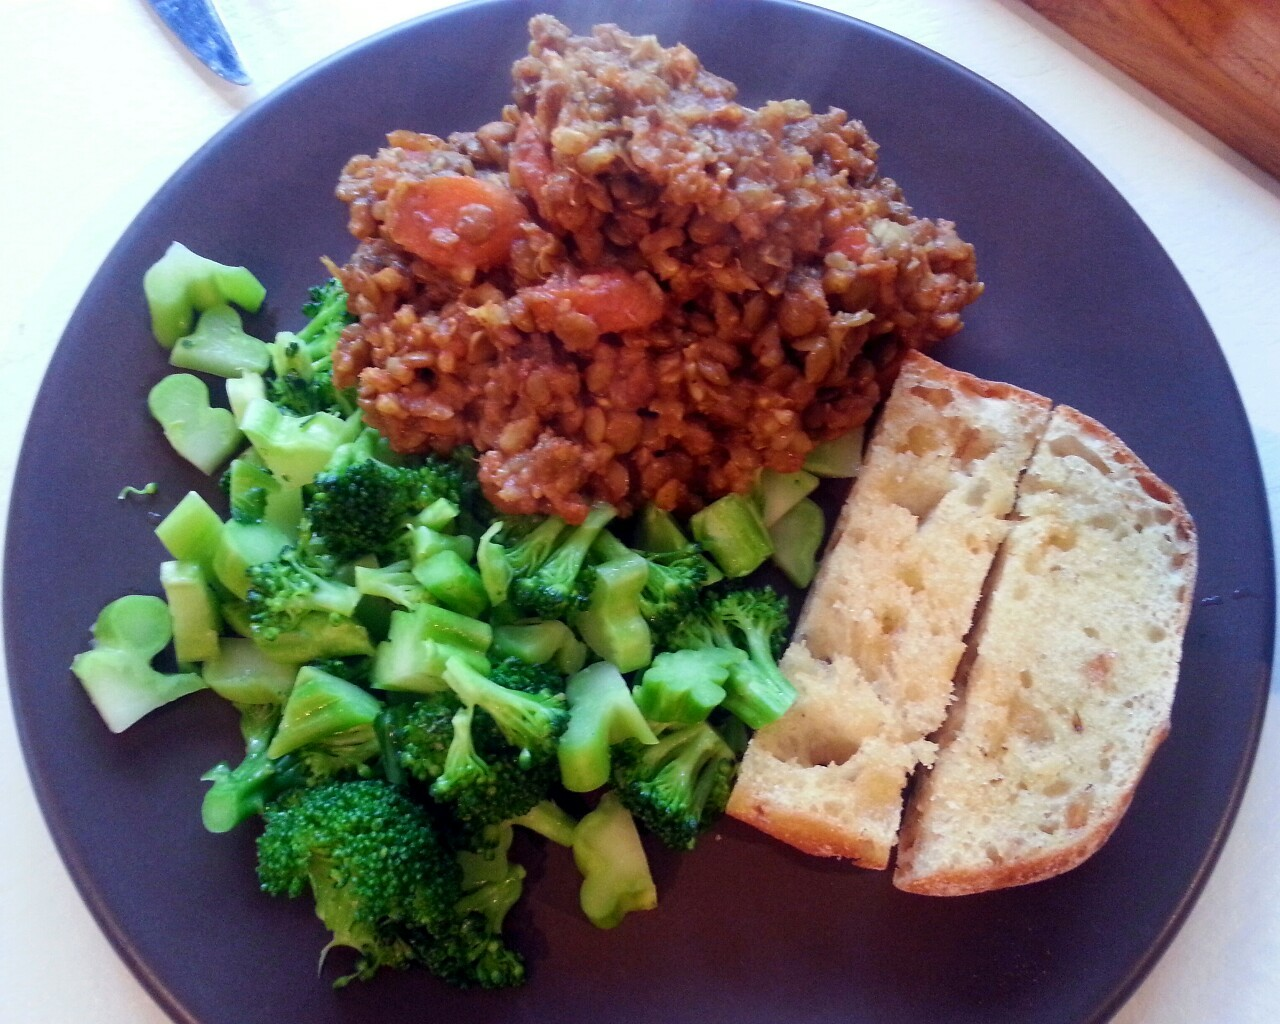 Slow Cooker Curried Lentils with Broccoli and Garlic Bread   I used my slow cooker, which I'm not really good at using as it turns out. Anyway, throw 2 cups lentils, 1 cup brown rice, about two or three carrots, and a chopped onion in the slow cooker with at least 4 cups water, maybe even 5 cause mine could have used more water to soak up. Veggie broth would be even better if you have it. Add 2 tbs curry powder, 1 tbs cumin, 1 tbs garlic, and cayenne, salt, and pepper to taste. Turn the cooker on low for 6 hours.   Slice a baguette down through the middle lengthwise and spread more Earth Balance and Garlic powder on it - or minced fresh garlic would be preferred. Pop that baby in the oven at 350 until it's warm and toasty.  When it's time to eat, chop up a head of broccoli and steam on medium heat with about 1 tbs Earth Balance for only a few minutes, until vivid green and just barely tender.   Have a delicious night!   Ps: if you don't have a slow cooker, or if you think they're stupid, just cook the lentils and rice at a simmer for about 45 minutes or until water is soaked up.